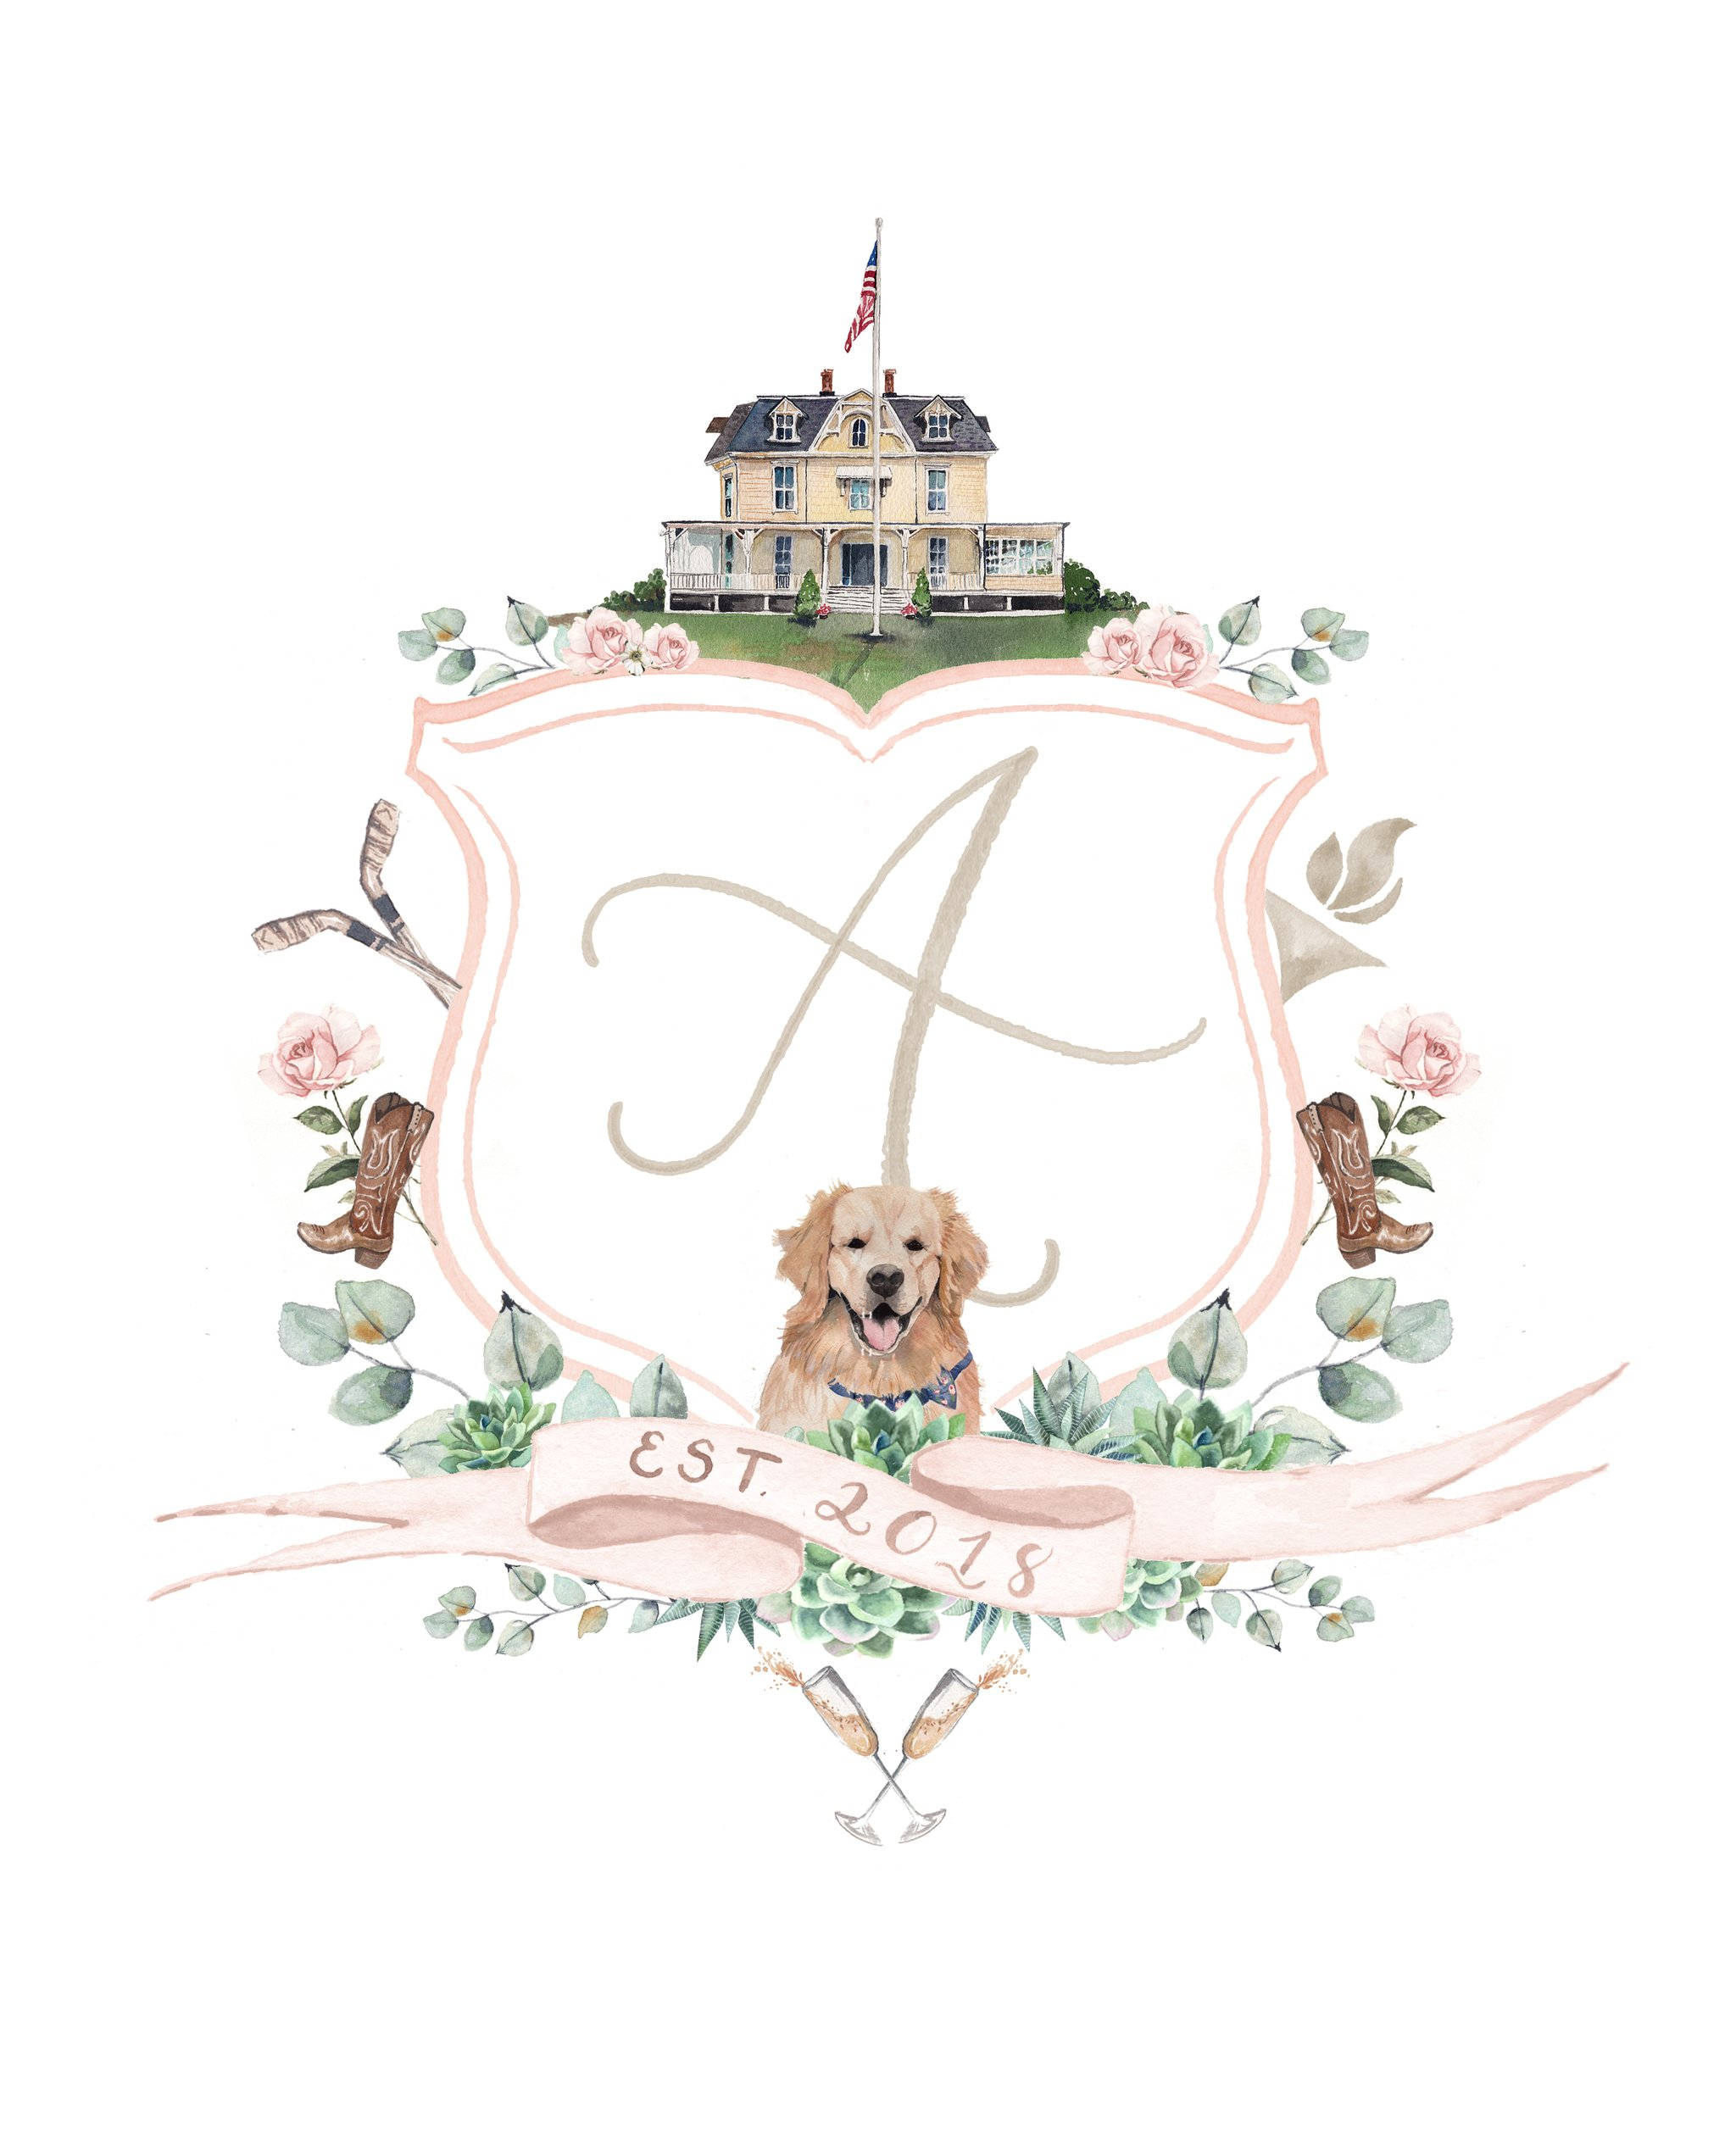 A sweet watercolor crest that you can adorn on all of your stationery to tie it all together cohesively.